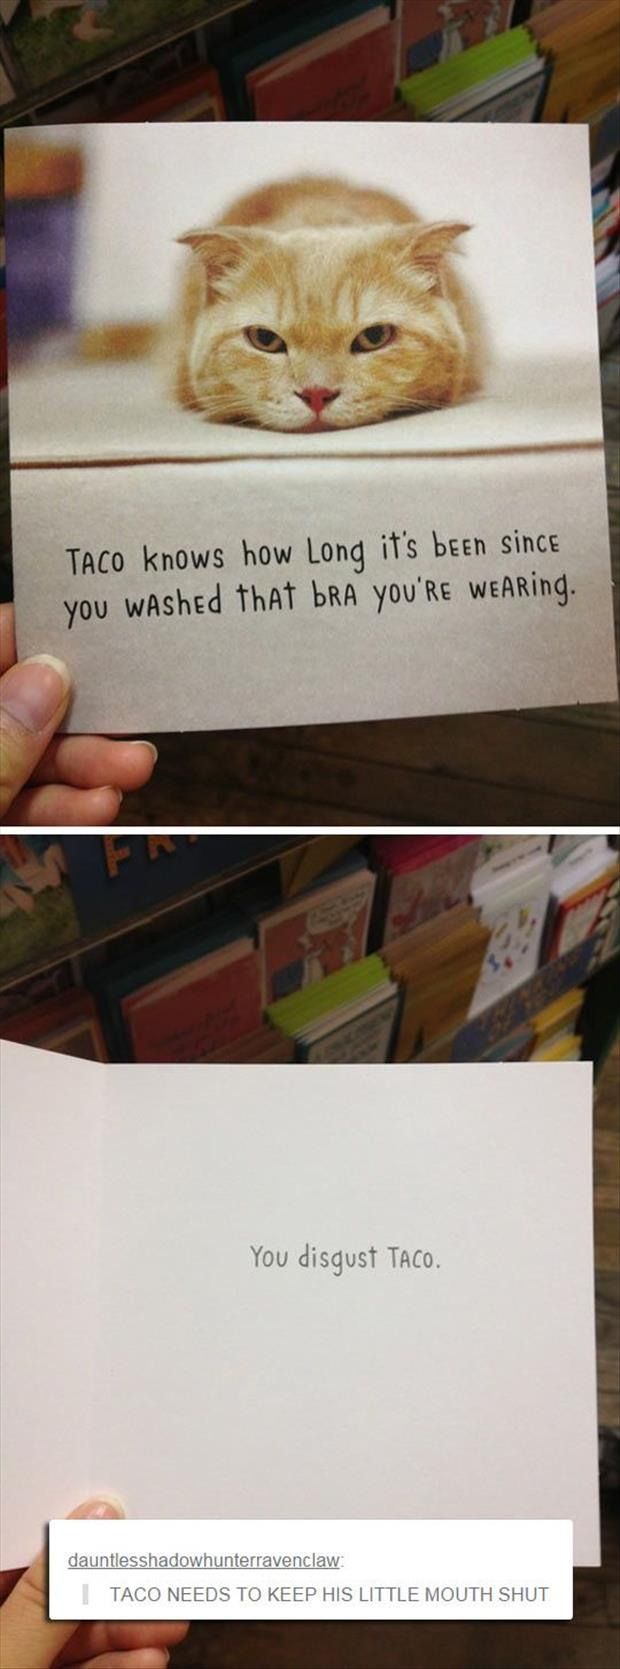 a taco needs to keep his mouth shut